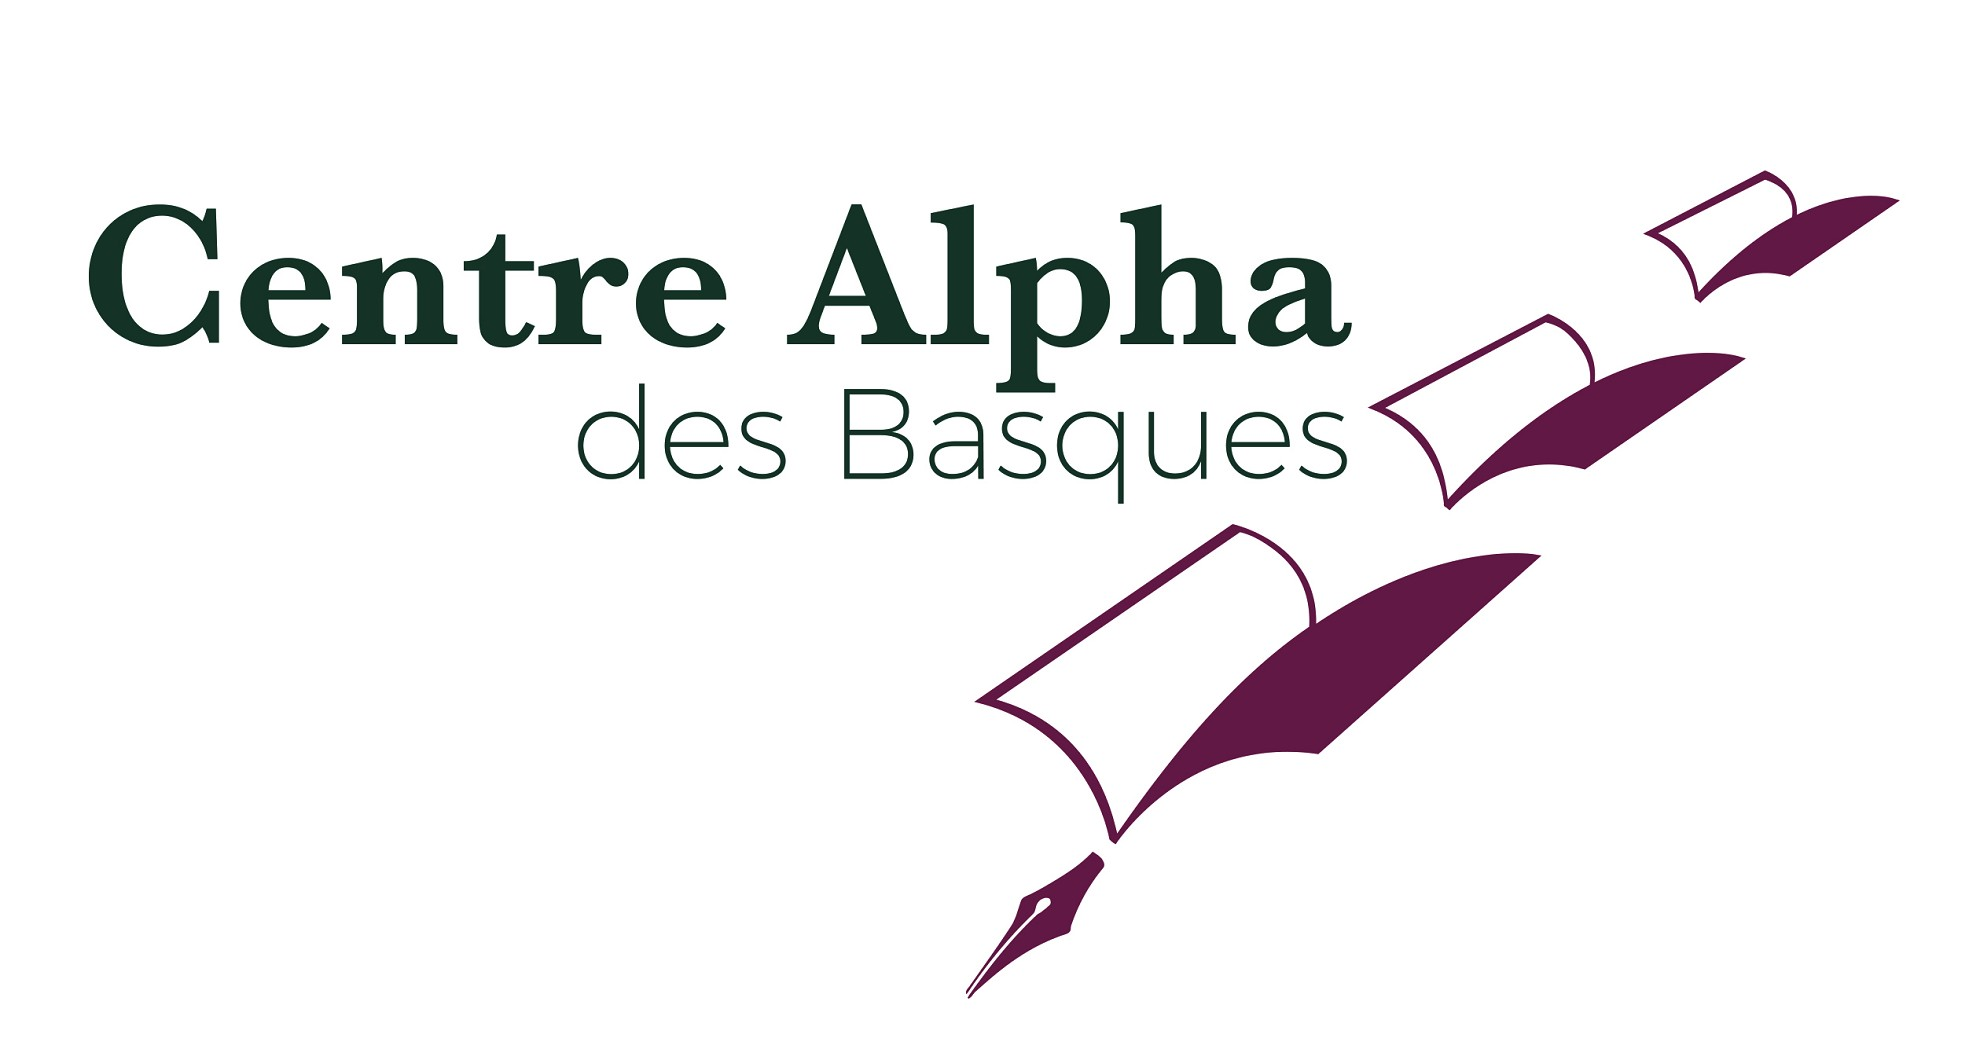 Centre Alpha des Basques